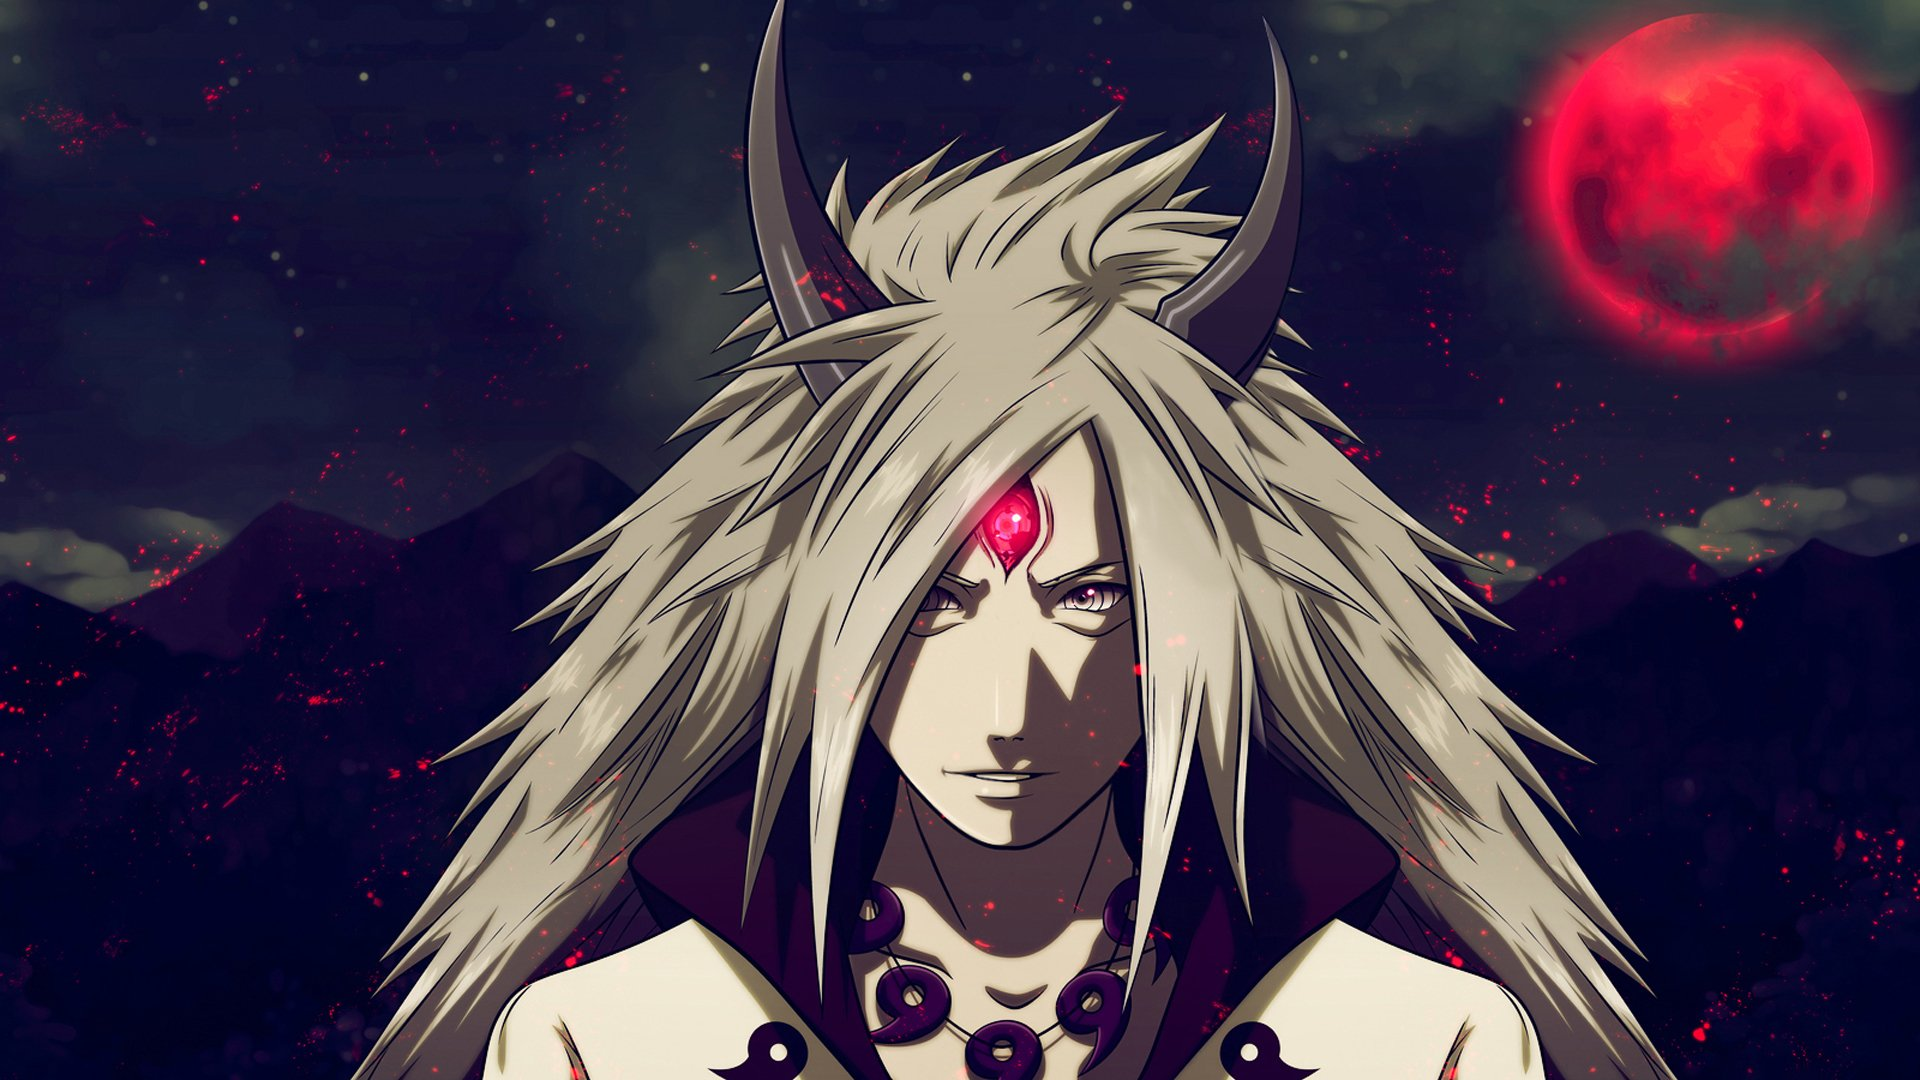 103 Madara Uchiha HD Wallpapers | Backgrounds - Wallpaper Abyss